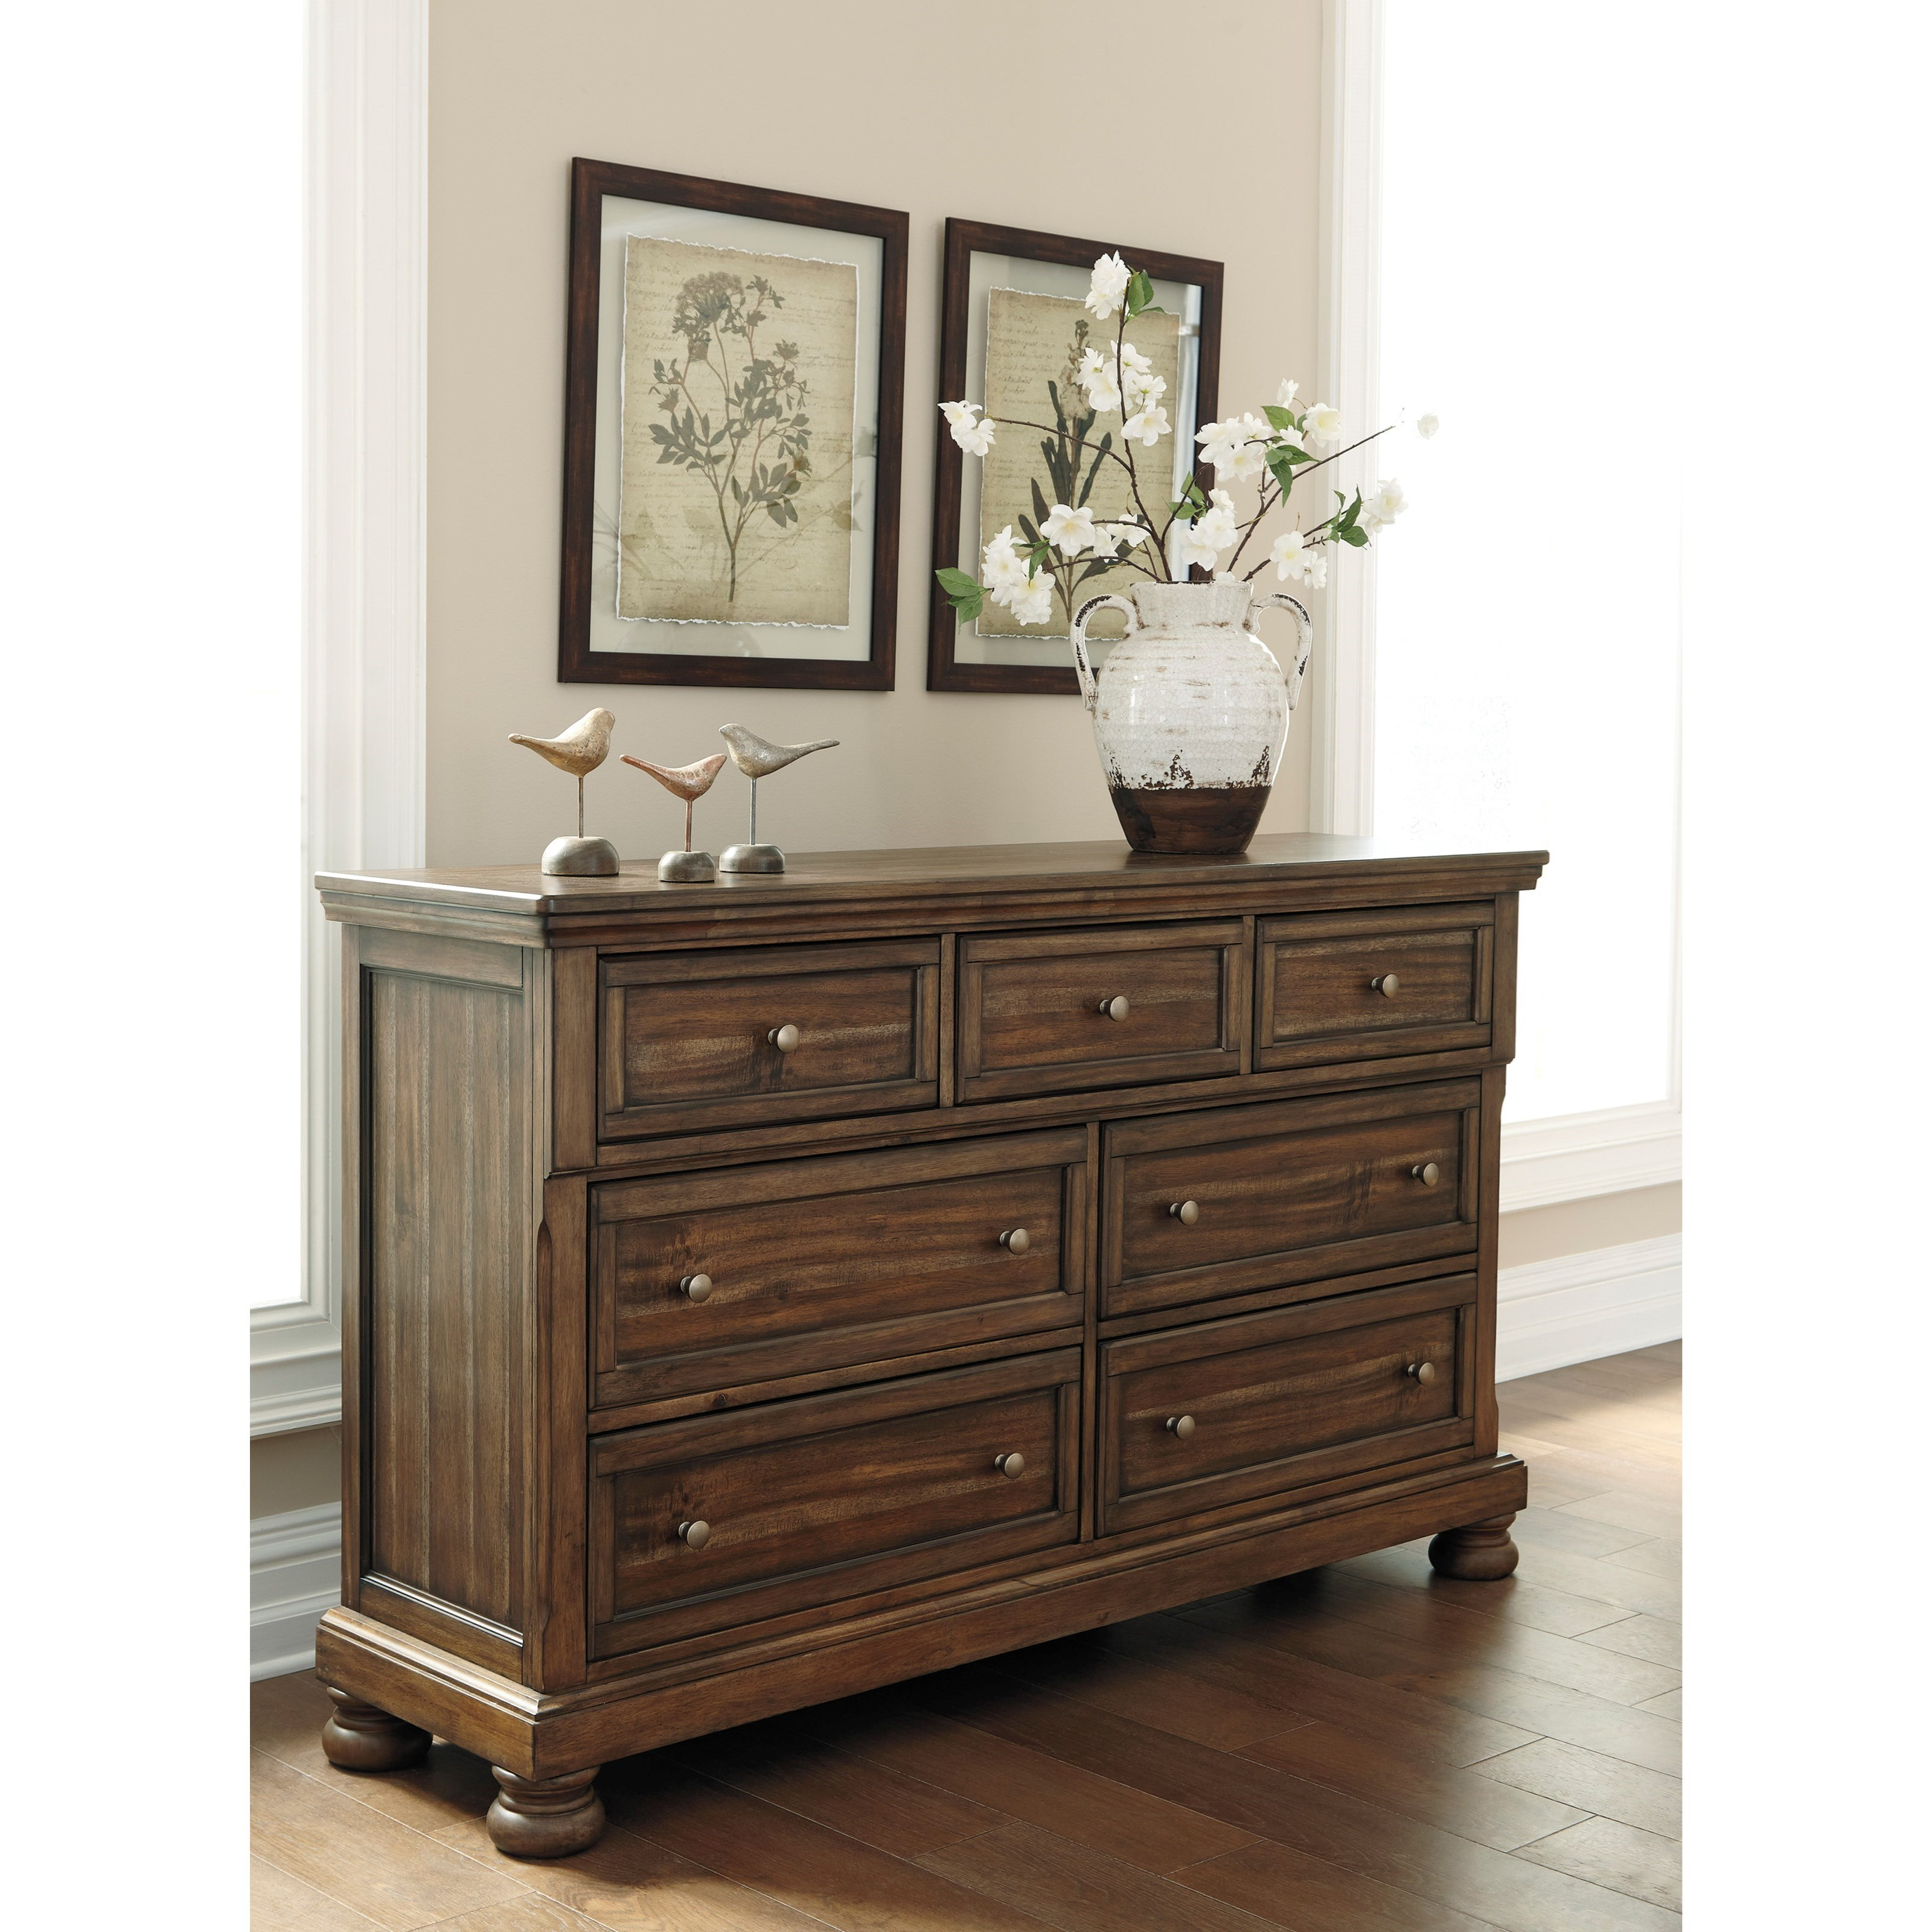 Dresser With Hidden Felt Lined Jewelry Drawer By Signature Design By